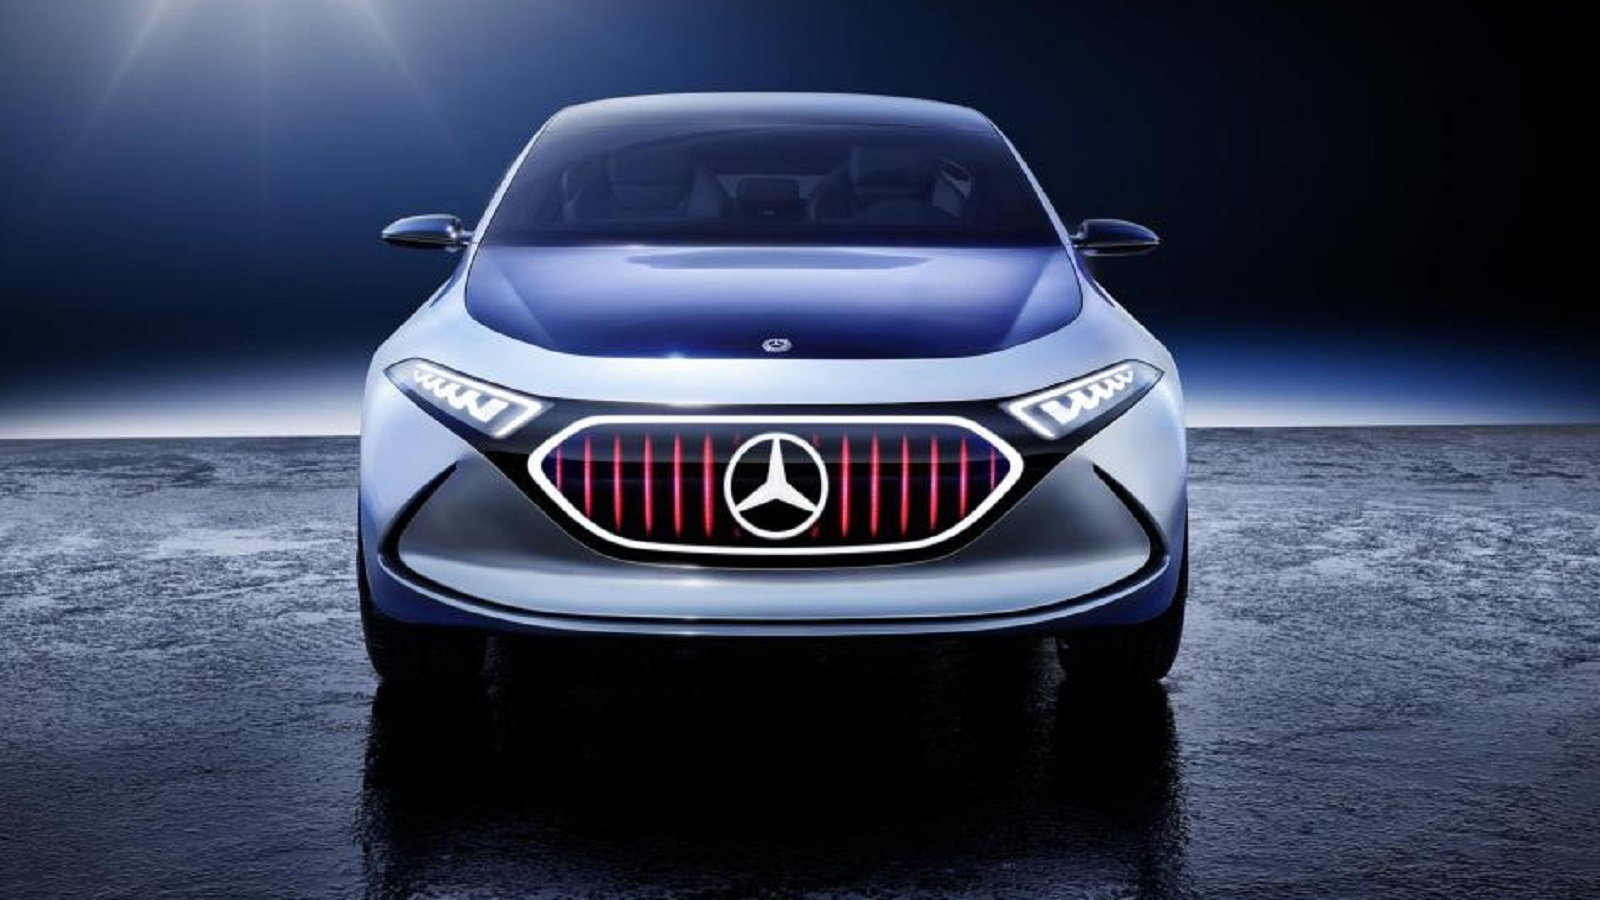 MB Launches New EQ Sub-Brand With Concept Hatchback